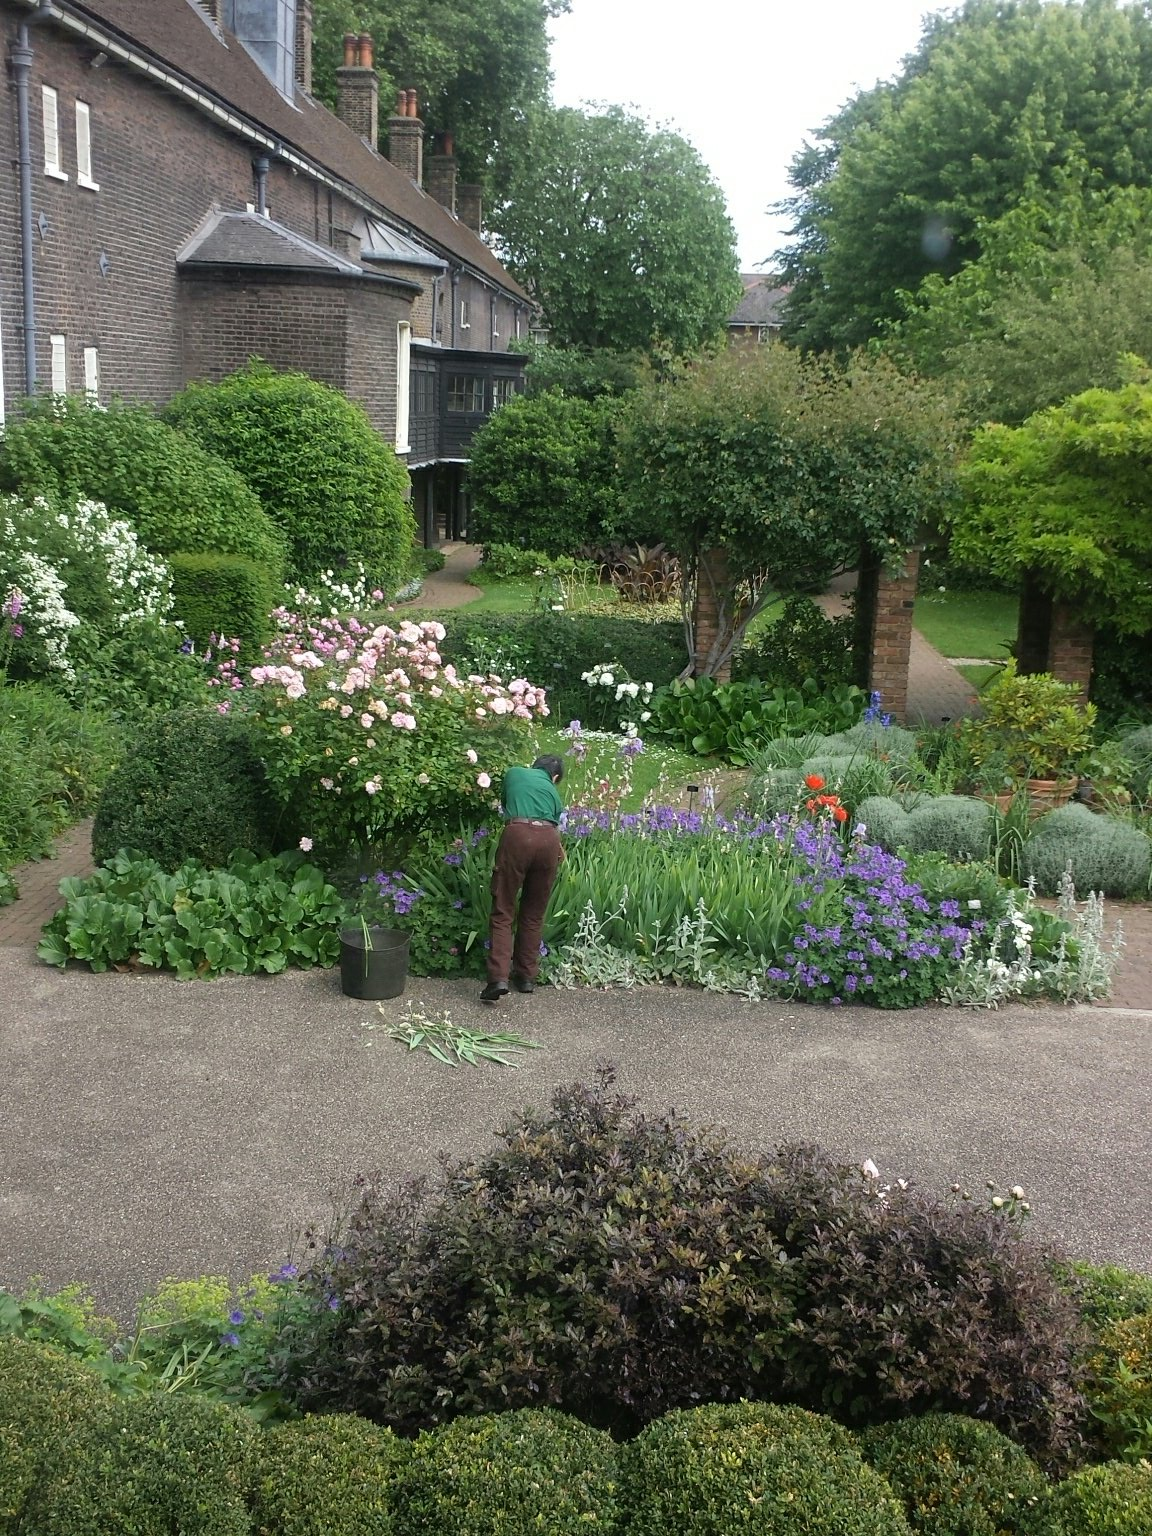 Are you near the Geffrye museum ?  Pop up Dragon Café singers & Diggers choir at 11.am today!  #chelseafringe @GEFFRYE https://t.co/6JcZ5PH0ov